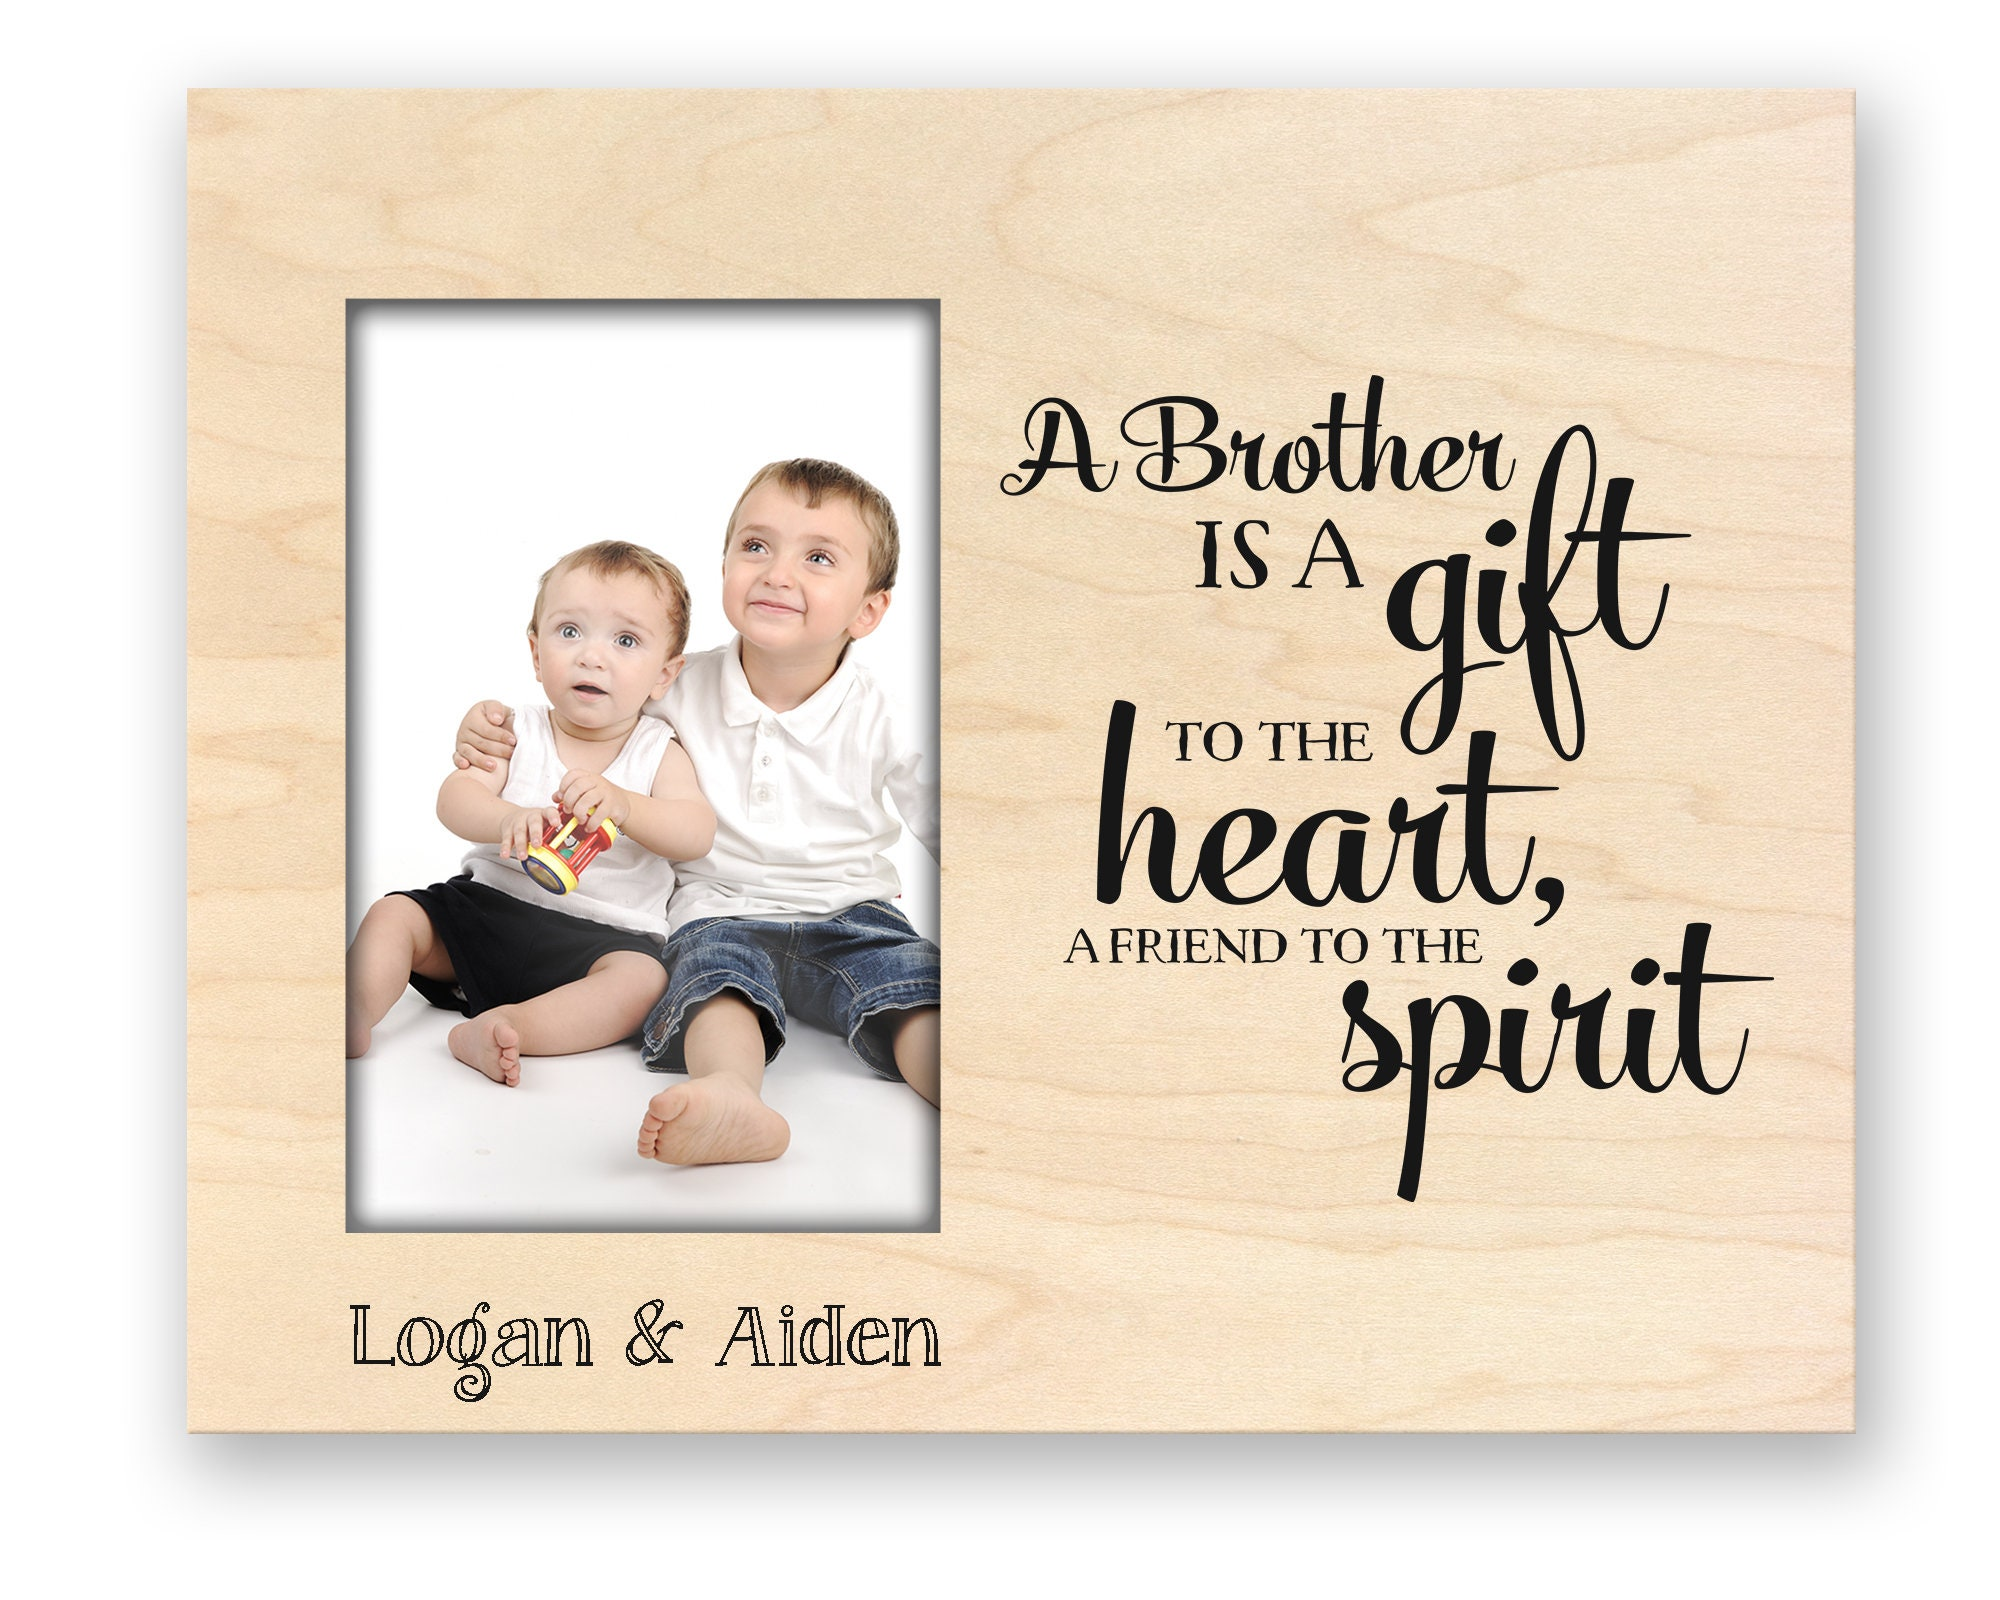 A Brother is a Gift to the Heart and a Friend to the Spirit | Etsy